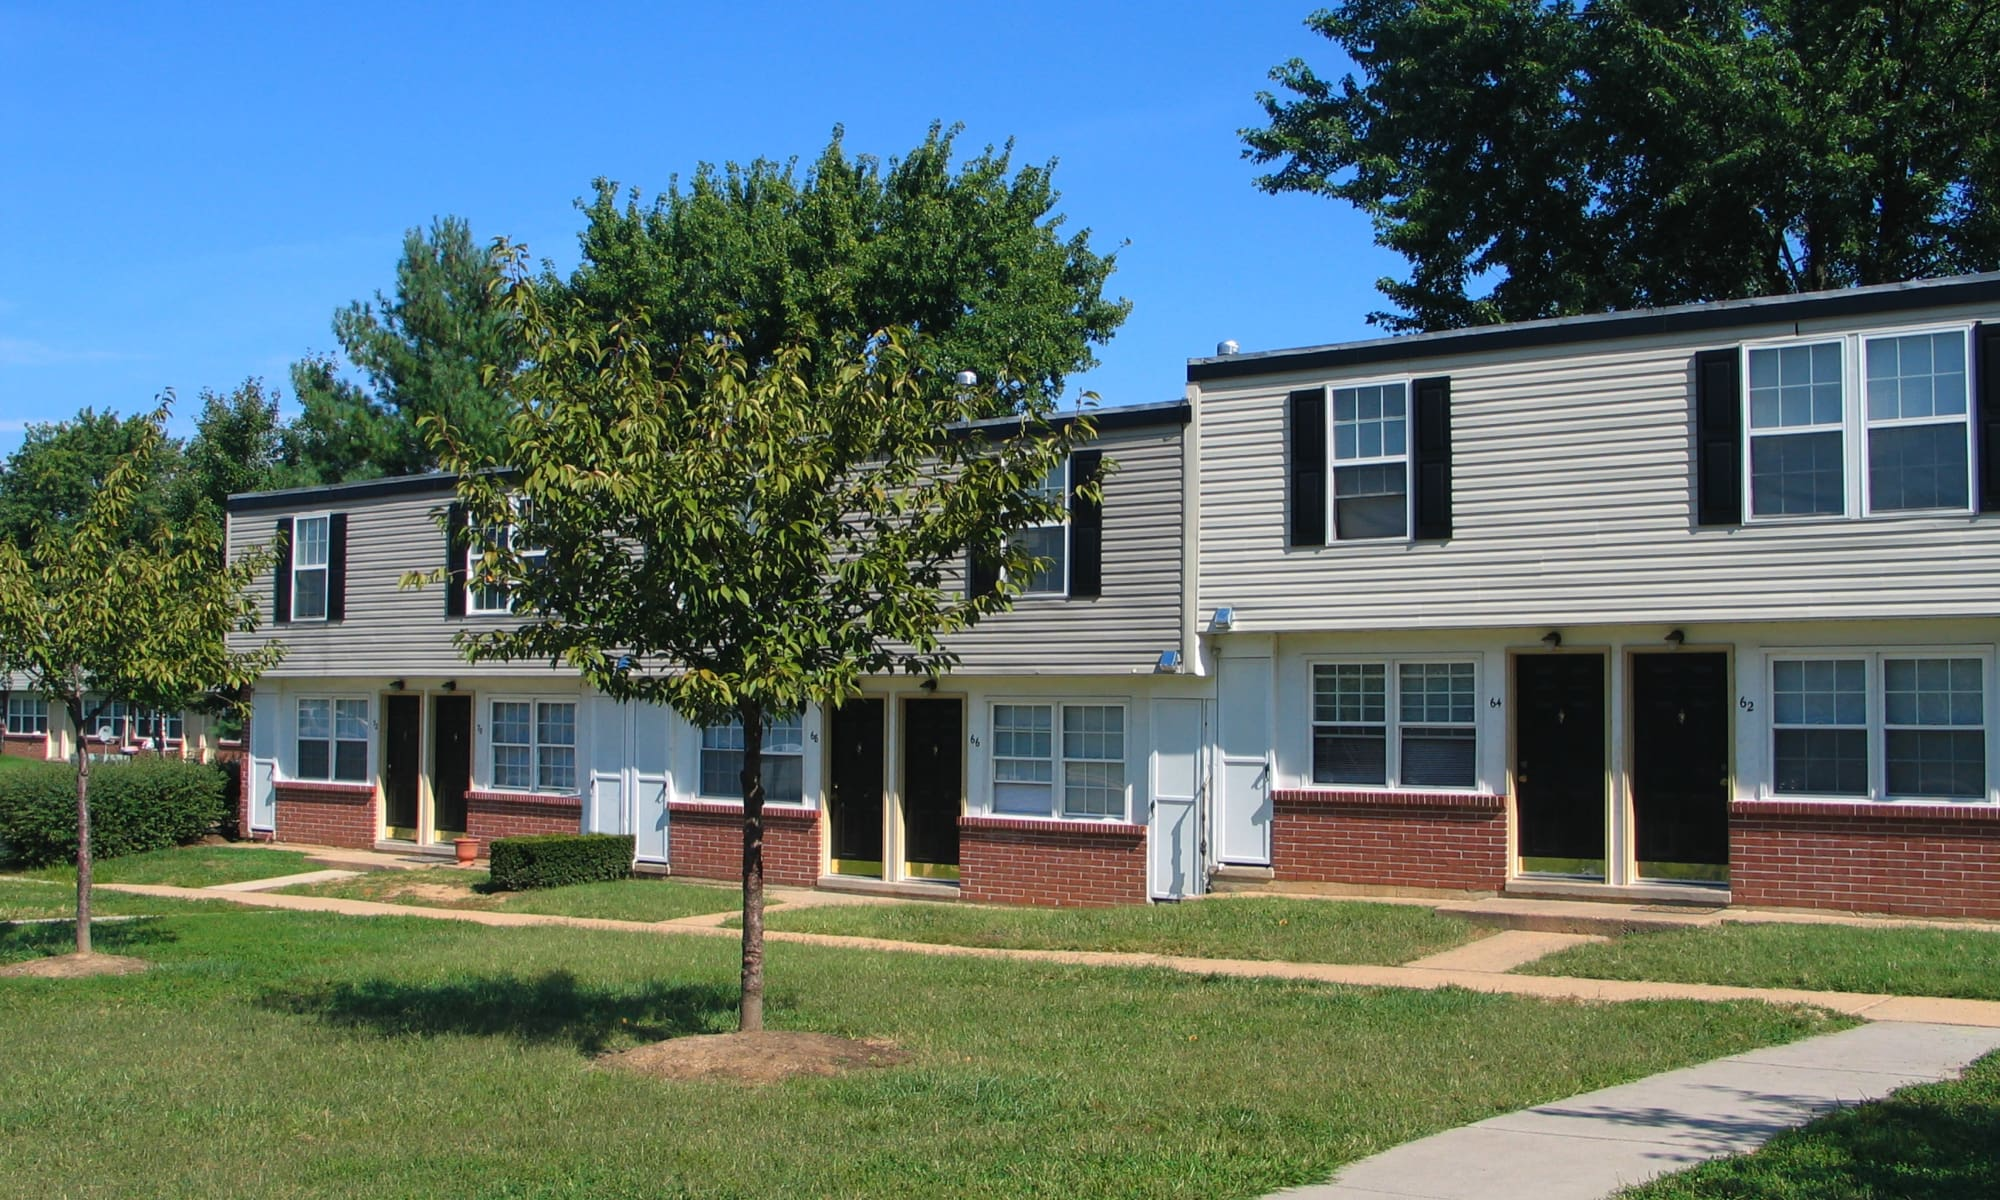 Apartments in Essex, MD